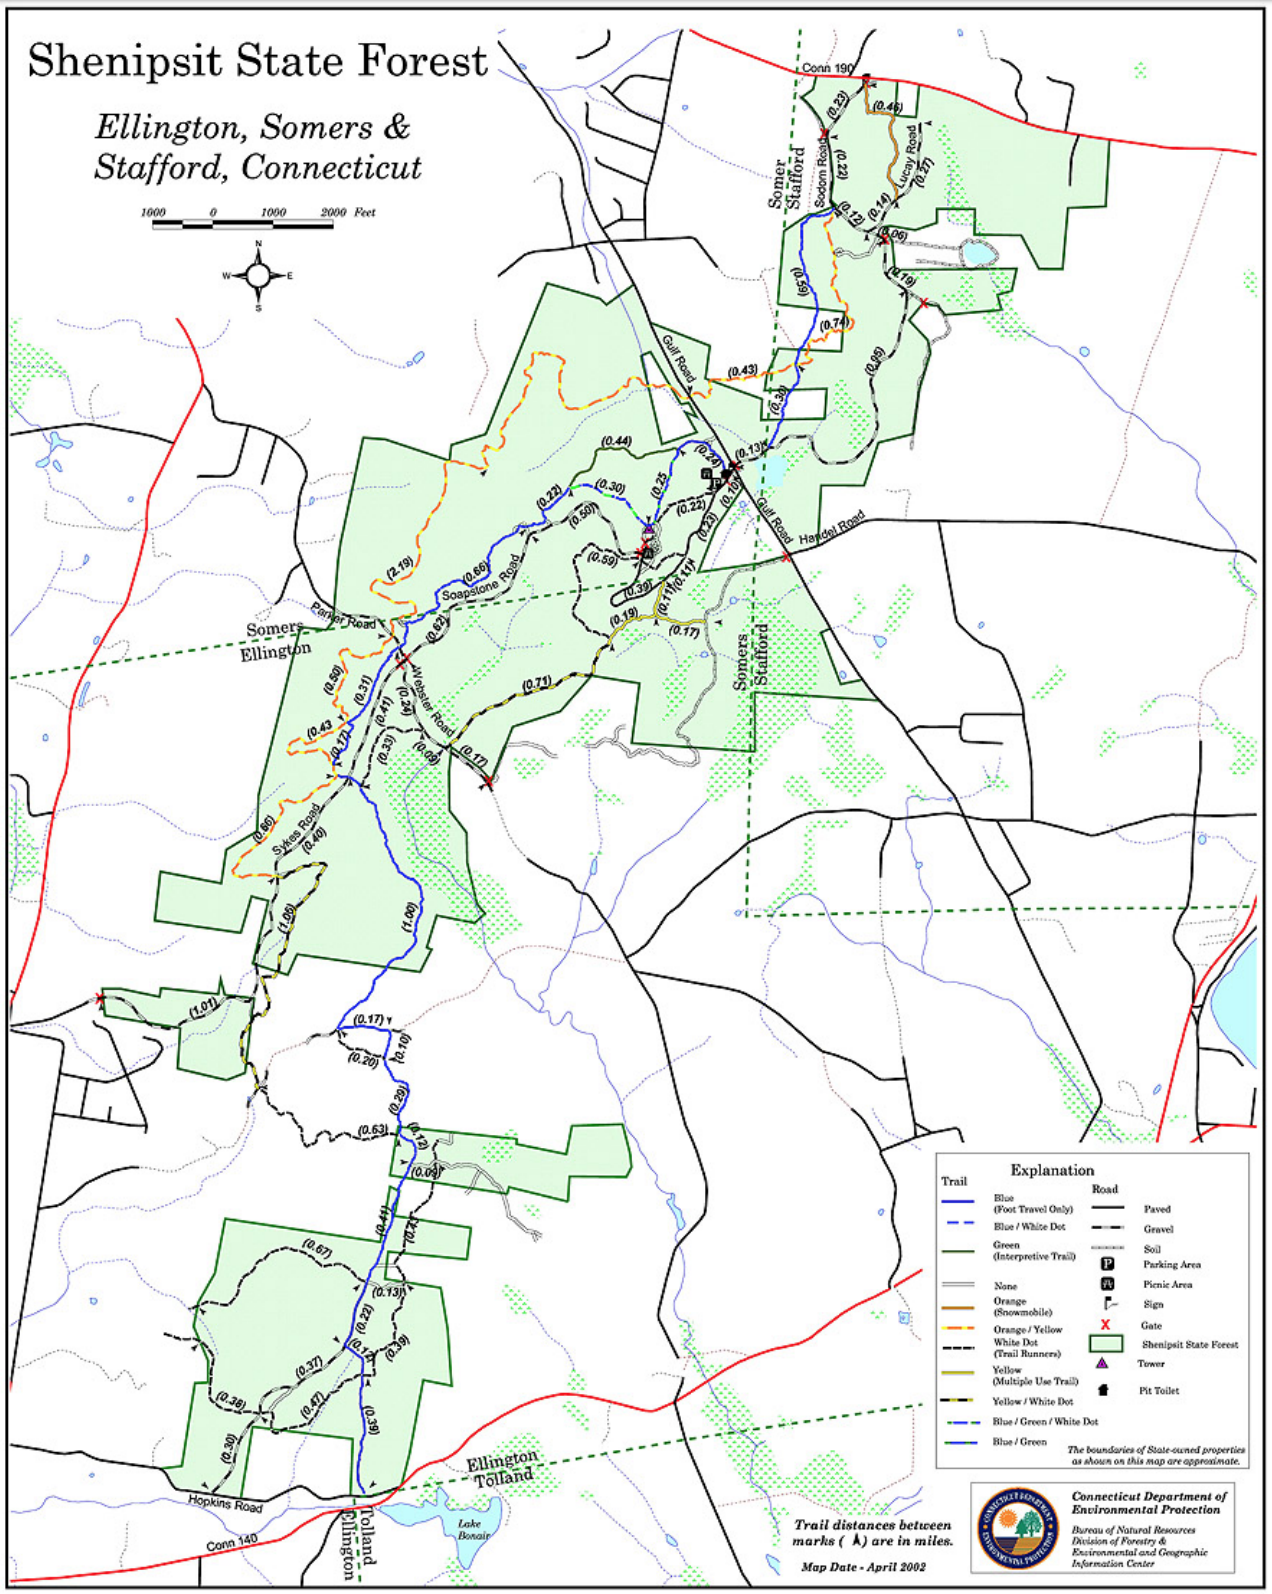 Shenipsit State Forest Trail Map